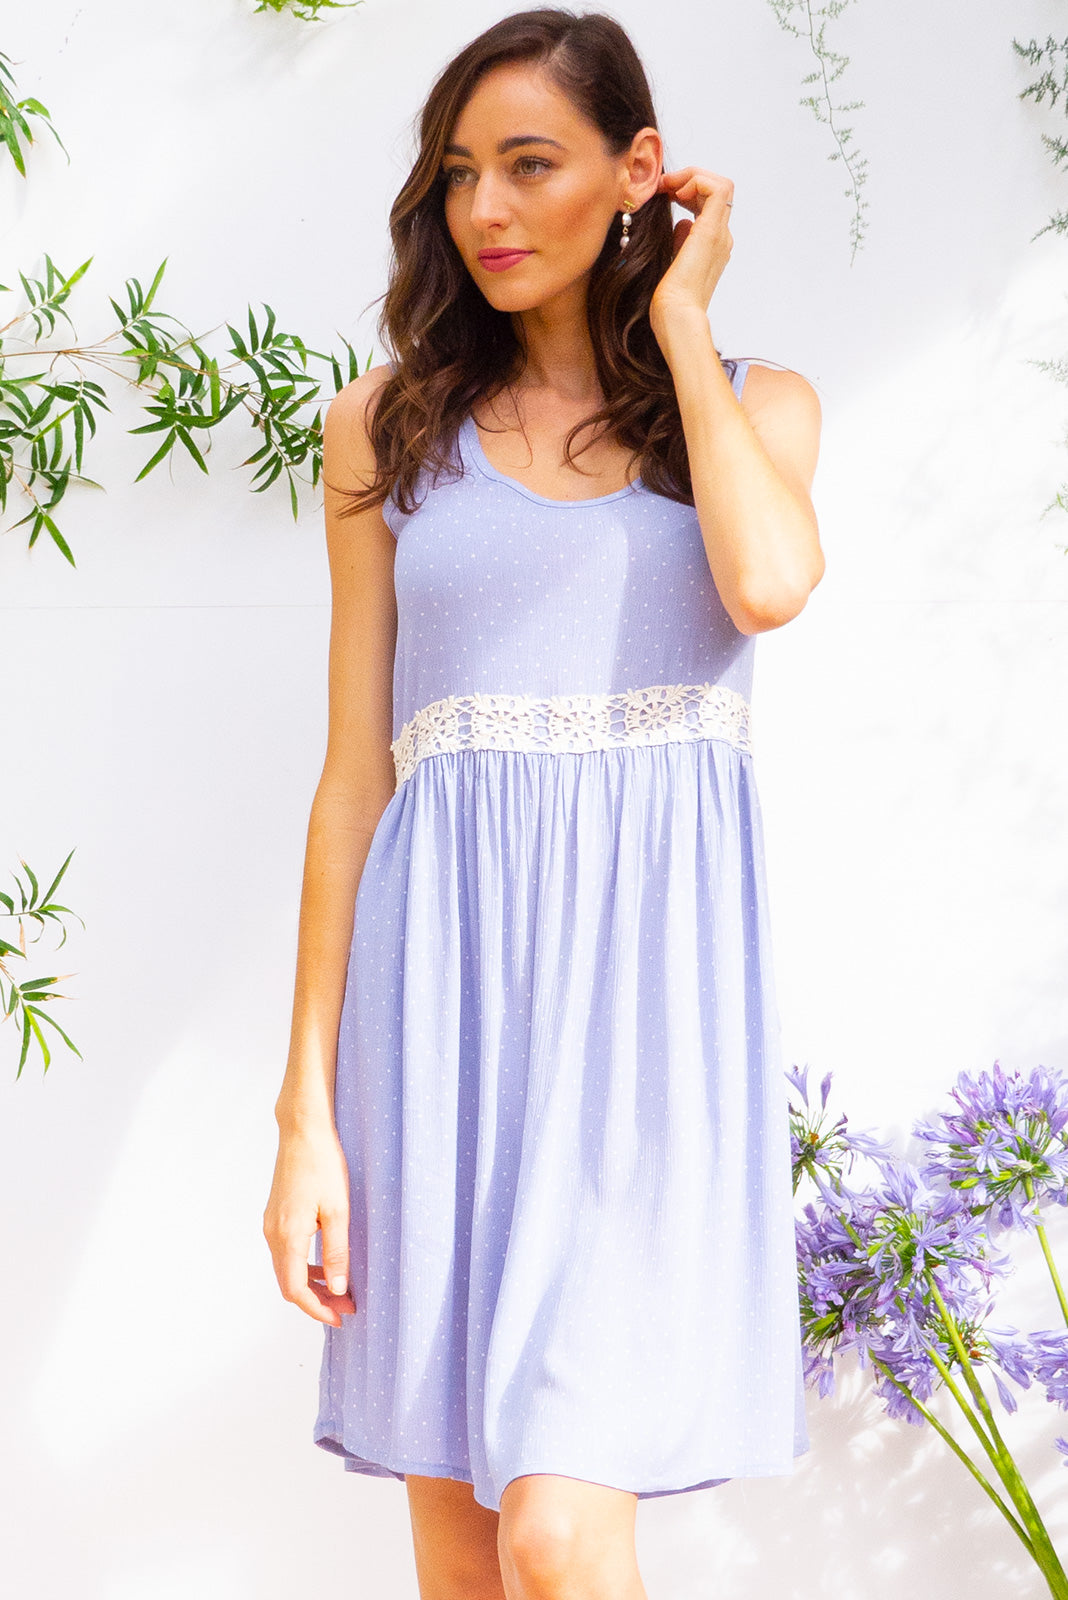 Sandi Beach Powder Blue Dress is a soft cut sleeveless dress with a adjustable button tab with feature cotton lace in a soft powder blue and white pin spot printed crinkle textured woven rayon